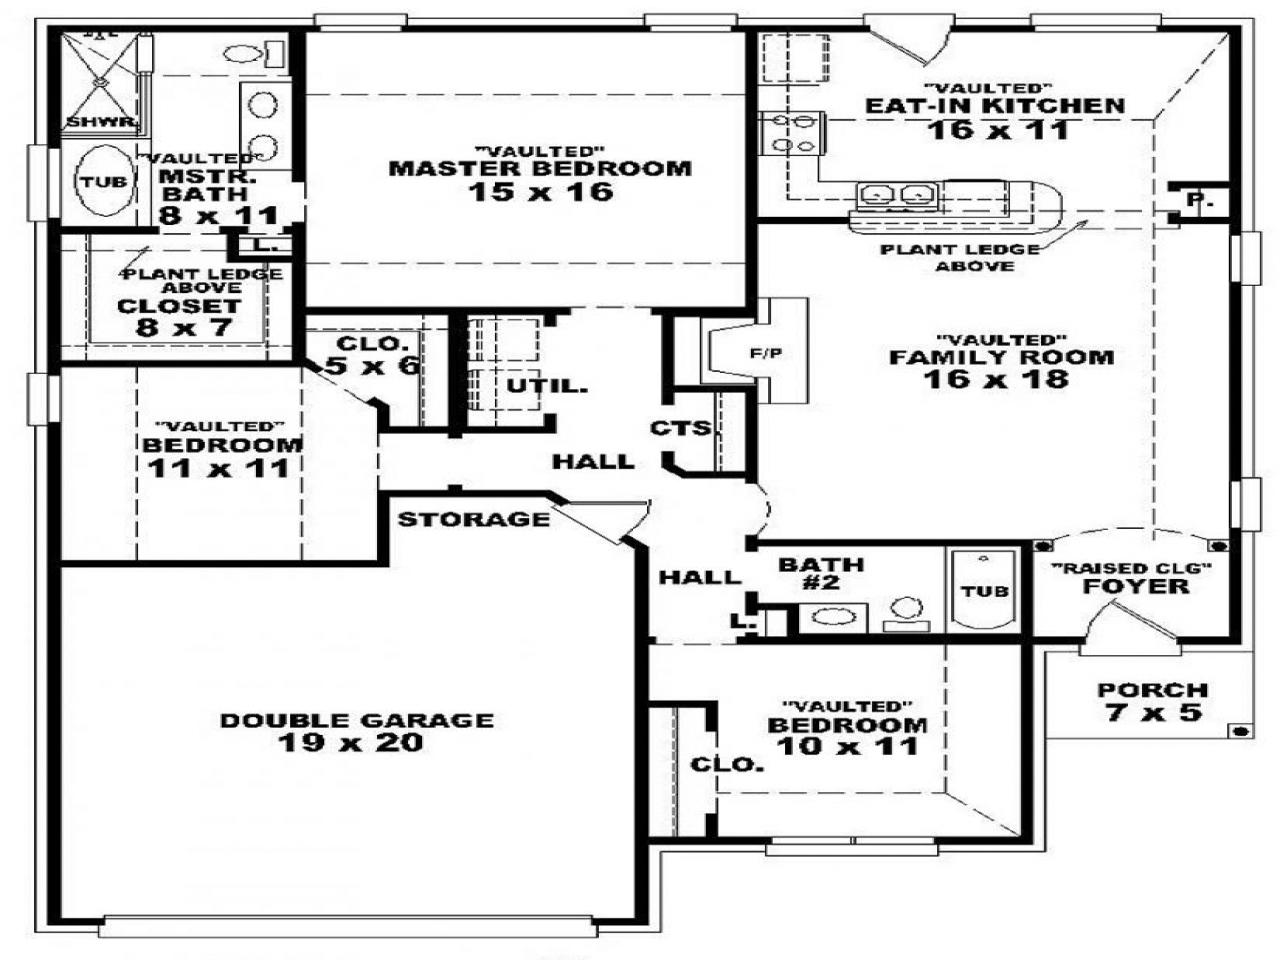 3 bedroom 2 bath house plans 1 level 3 bedroom 2 bath 1 for 3 bedroom 1 story house plans